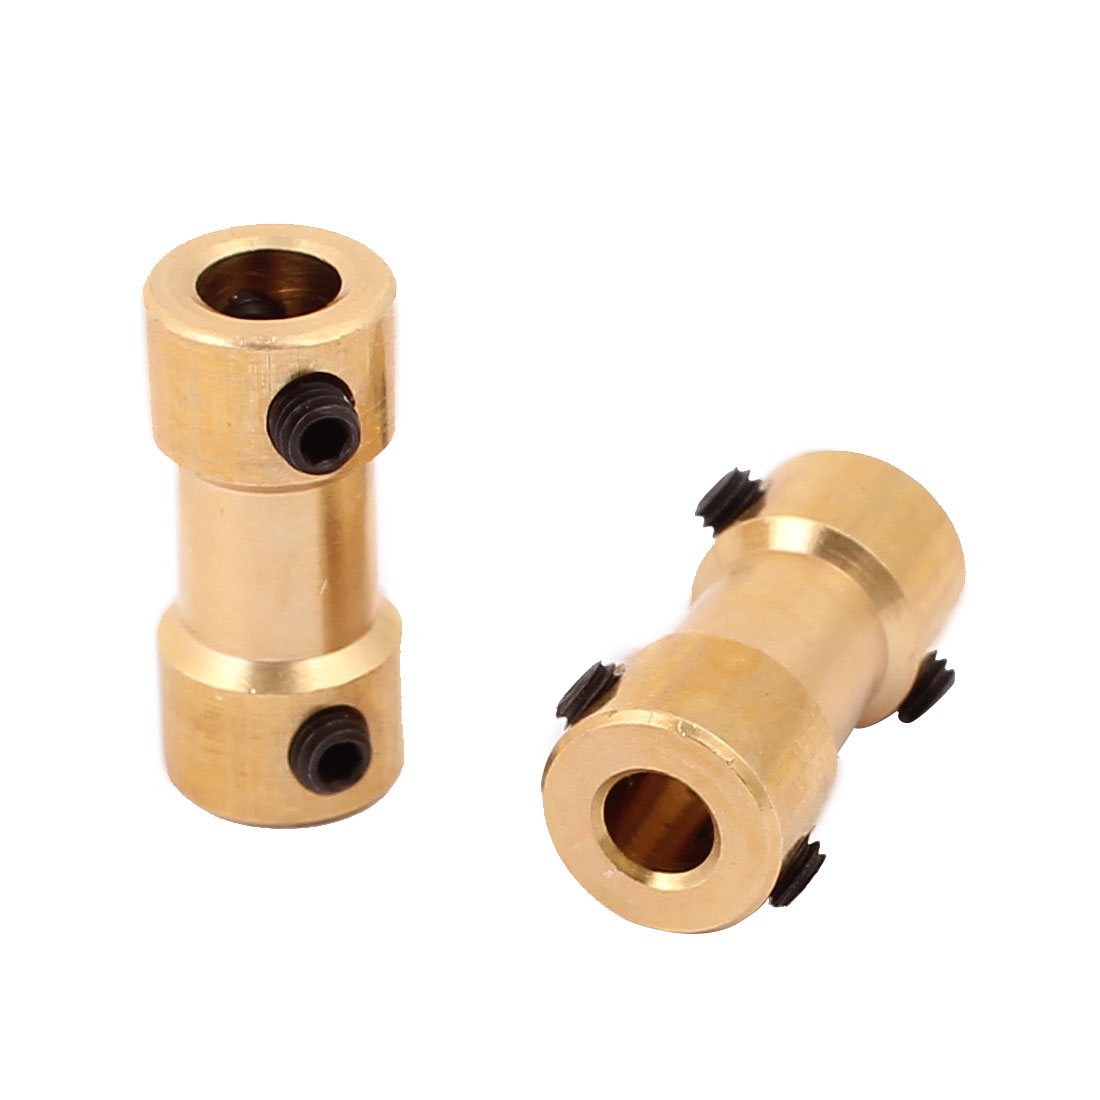 2Pcs 5mm to 4mm Copper DIY Motor Shaft Coupling Joint Connector for Electric Toy